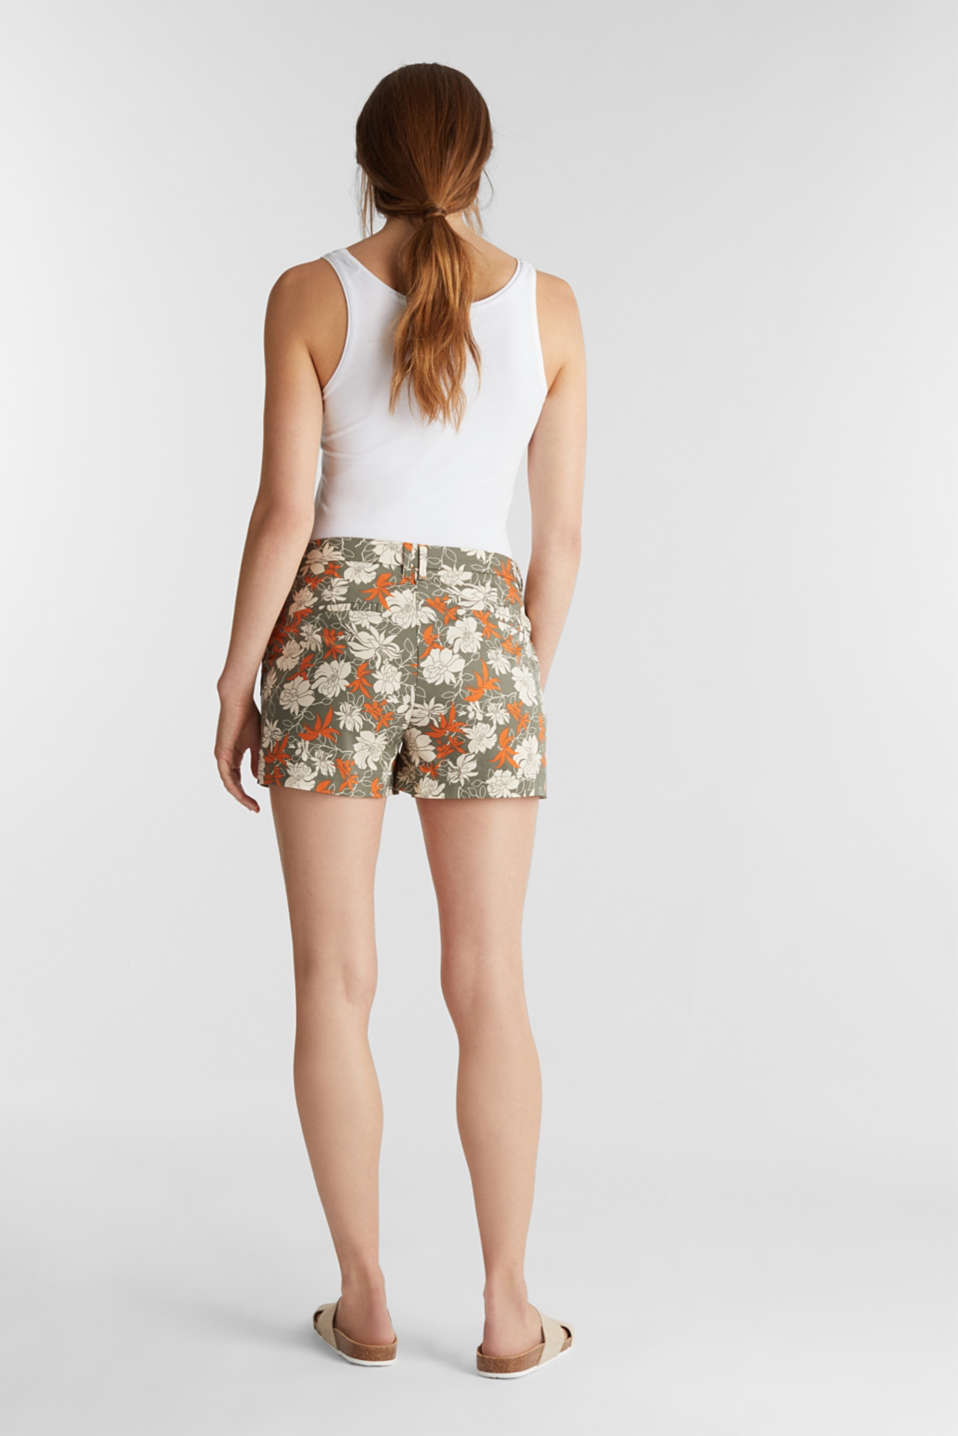 Shorts with a floral print, KHAKI GREEN 4, detail image number 3